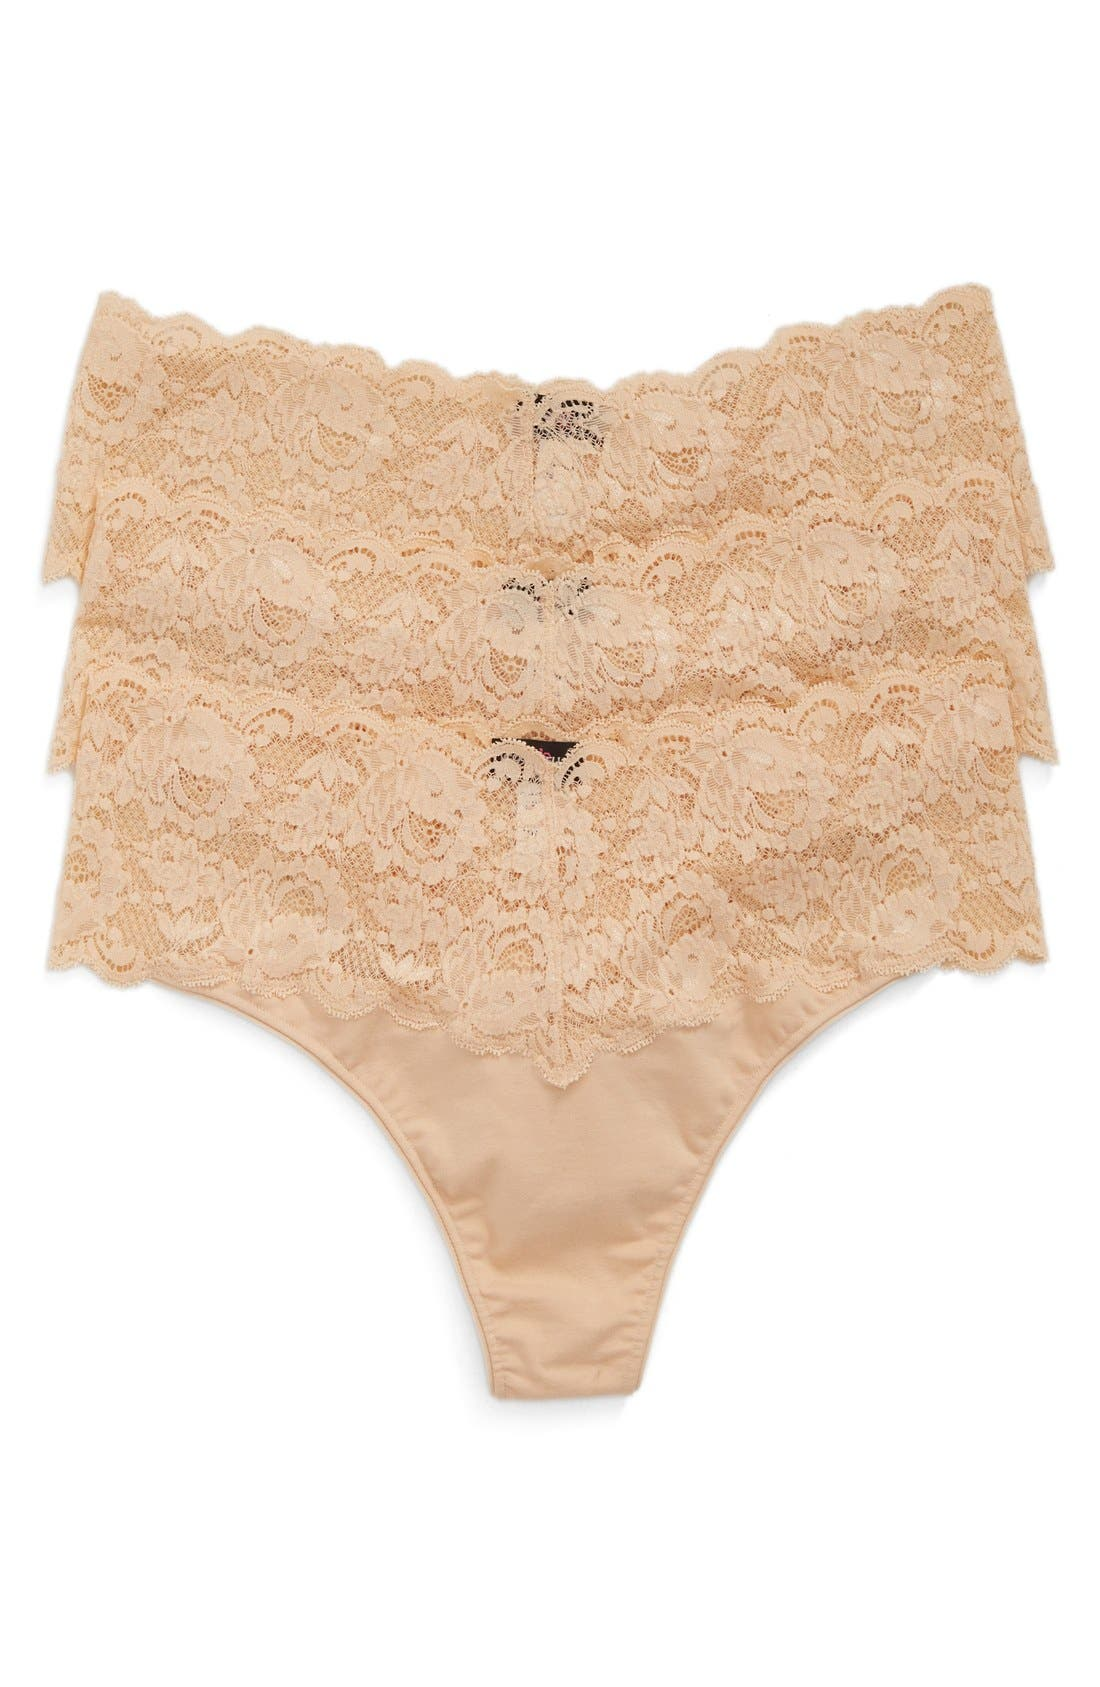 Alternate Image 1 Selected - Cosabella 'Lovelie' Lace Trim Thong (Plus Size) (3-Pack) (Online Only)